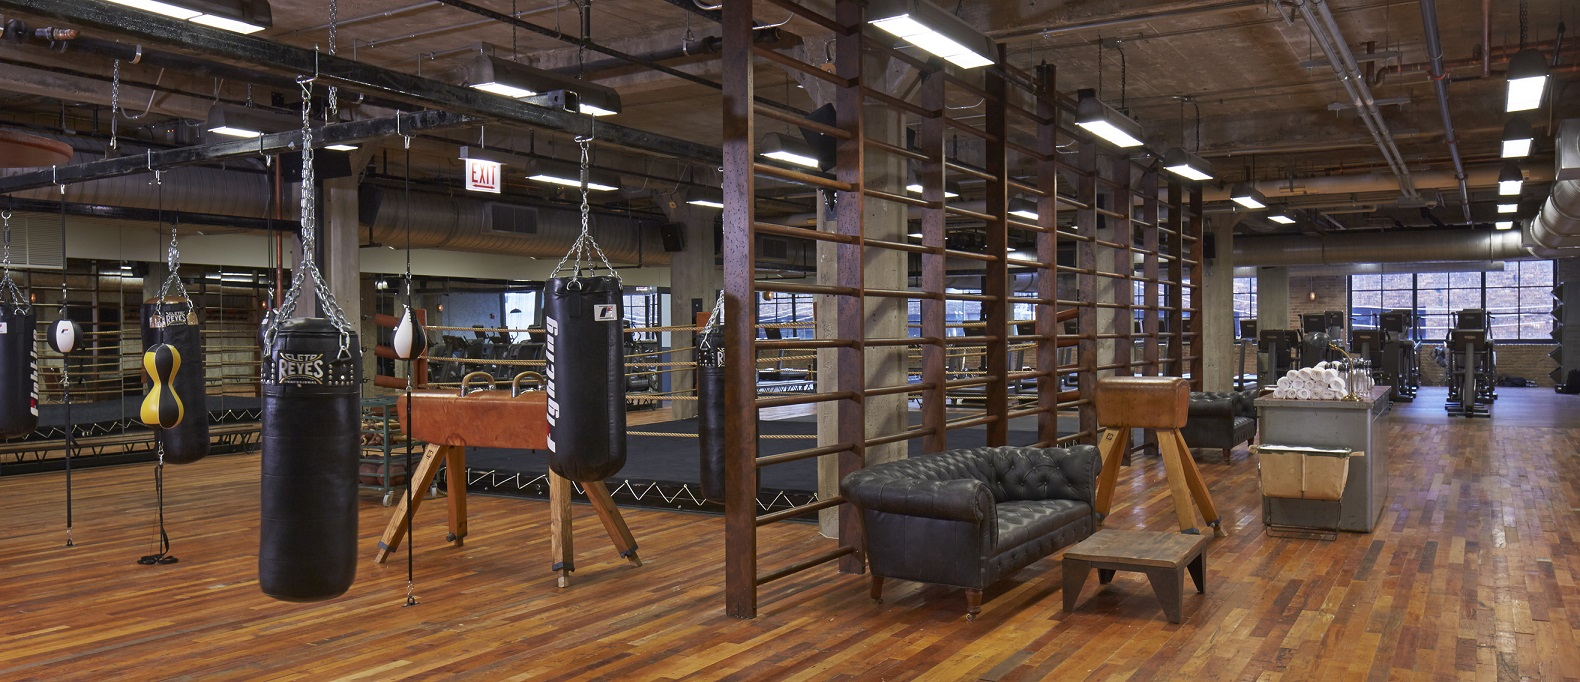 Soho House Chicago_Gym_photo credit is Dave Burk of Hedrich Blessing